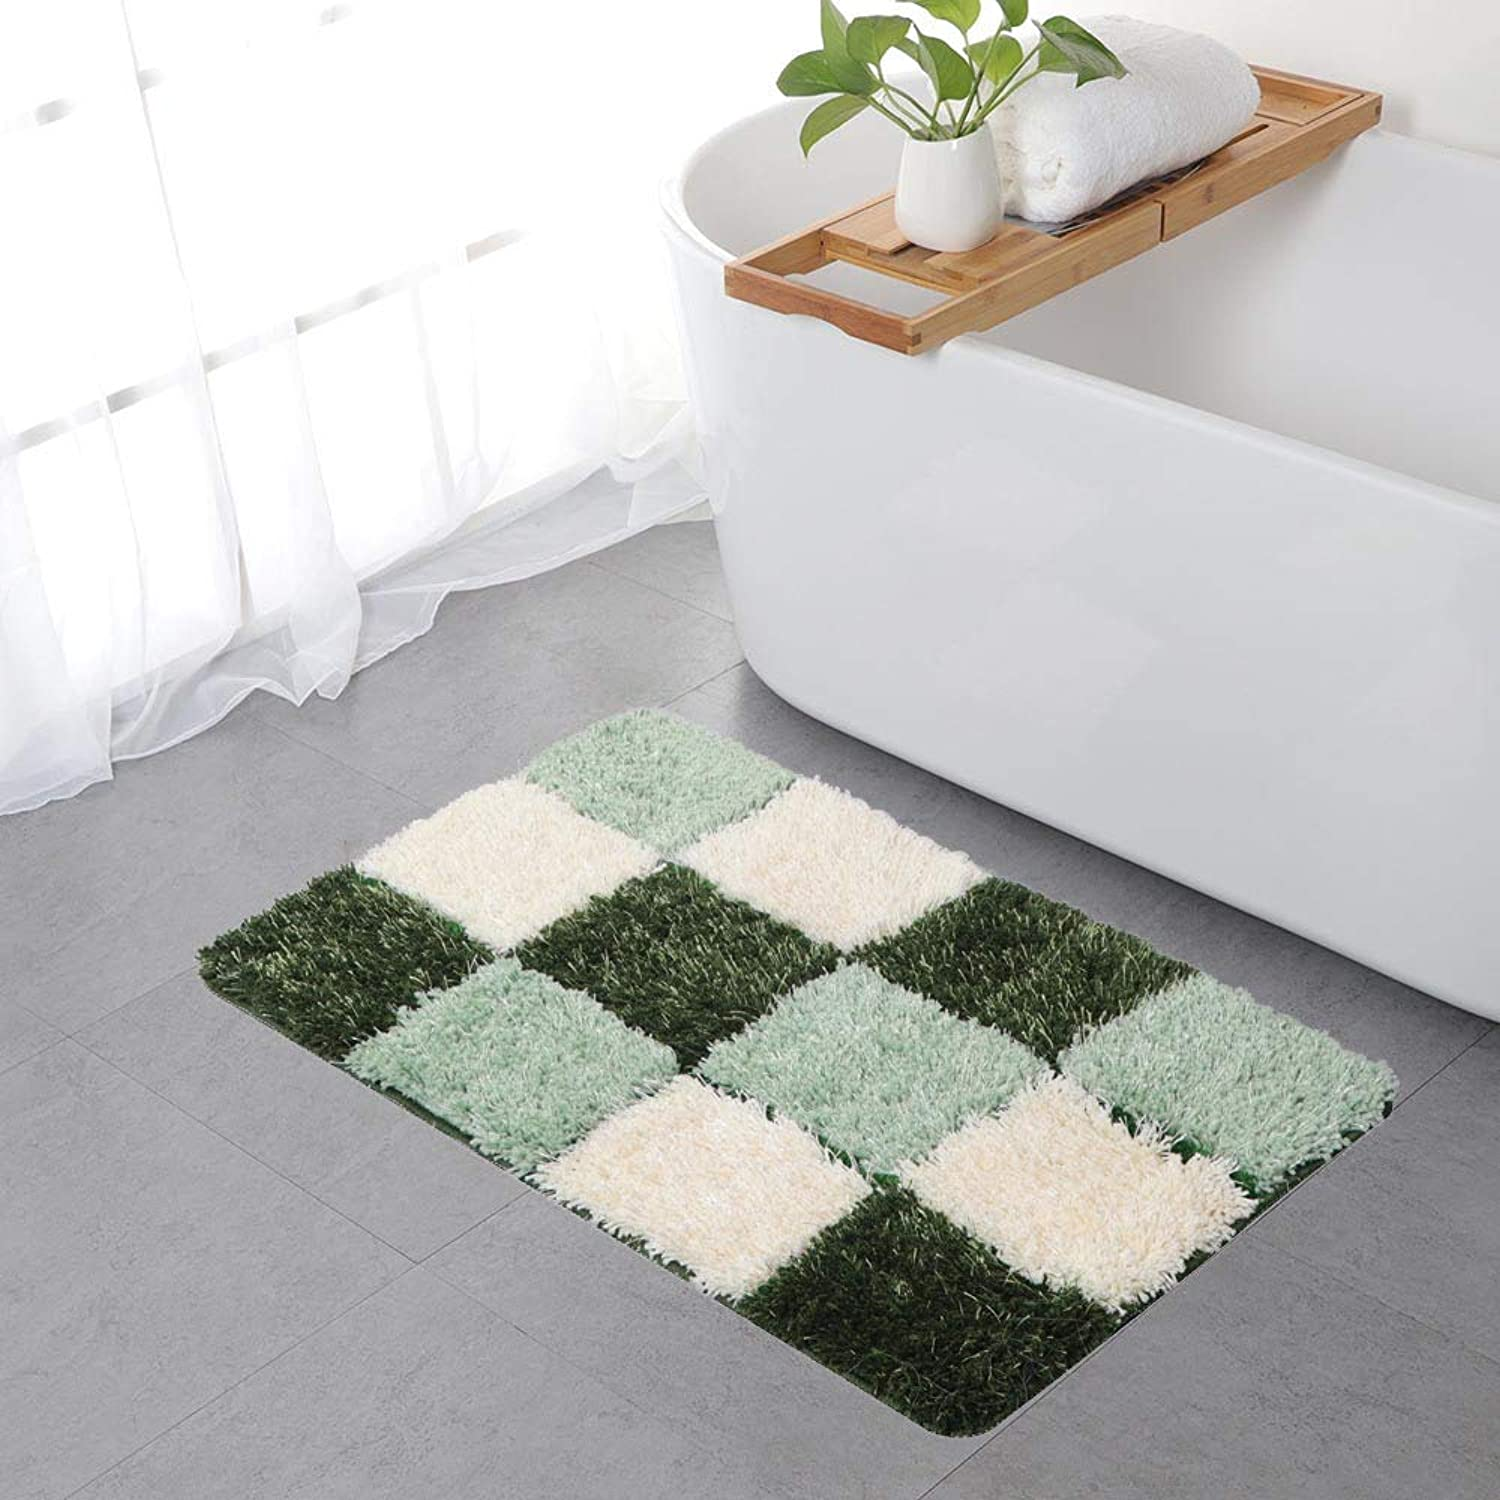 Mosaic Doormat Front Door Mat Indoor Outdoor Carpet Non-Slip Bathroom Rug Home Decoration 2' x 3' (Green)